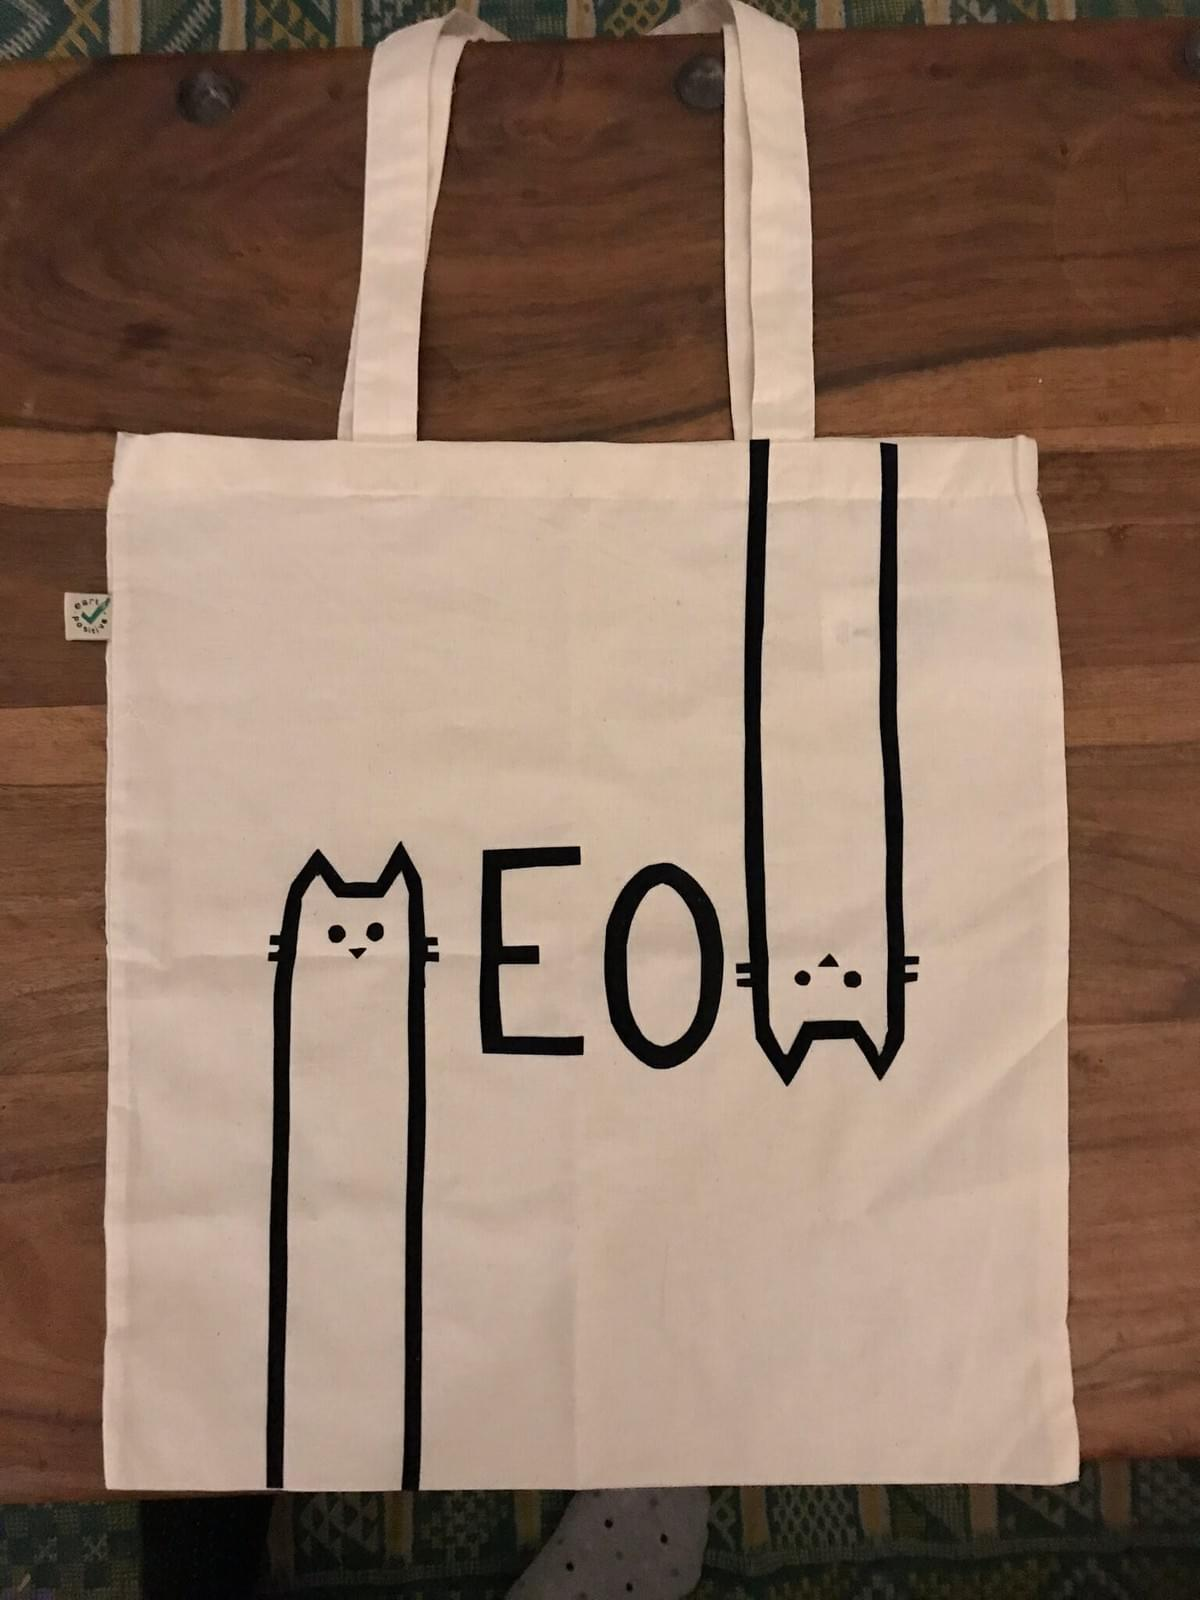 Printed tote bag with 'Meow' written across. The M and W are cat faces